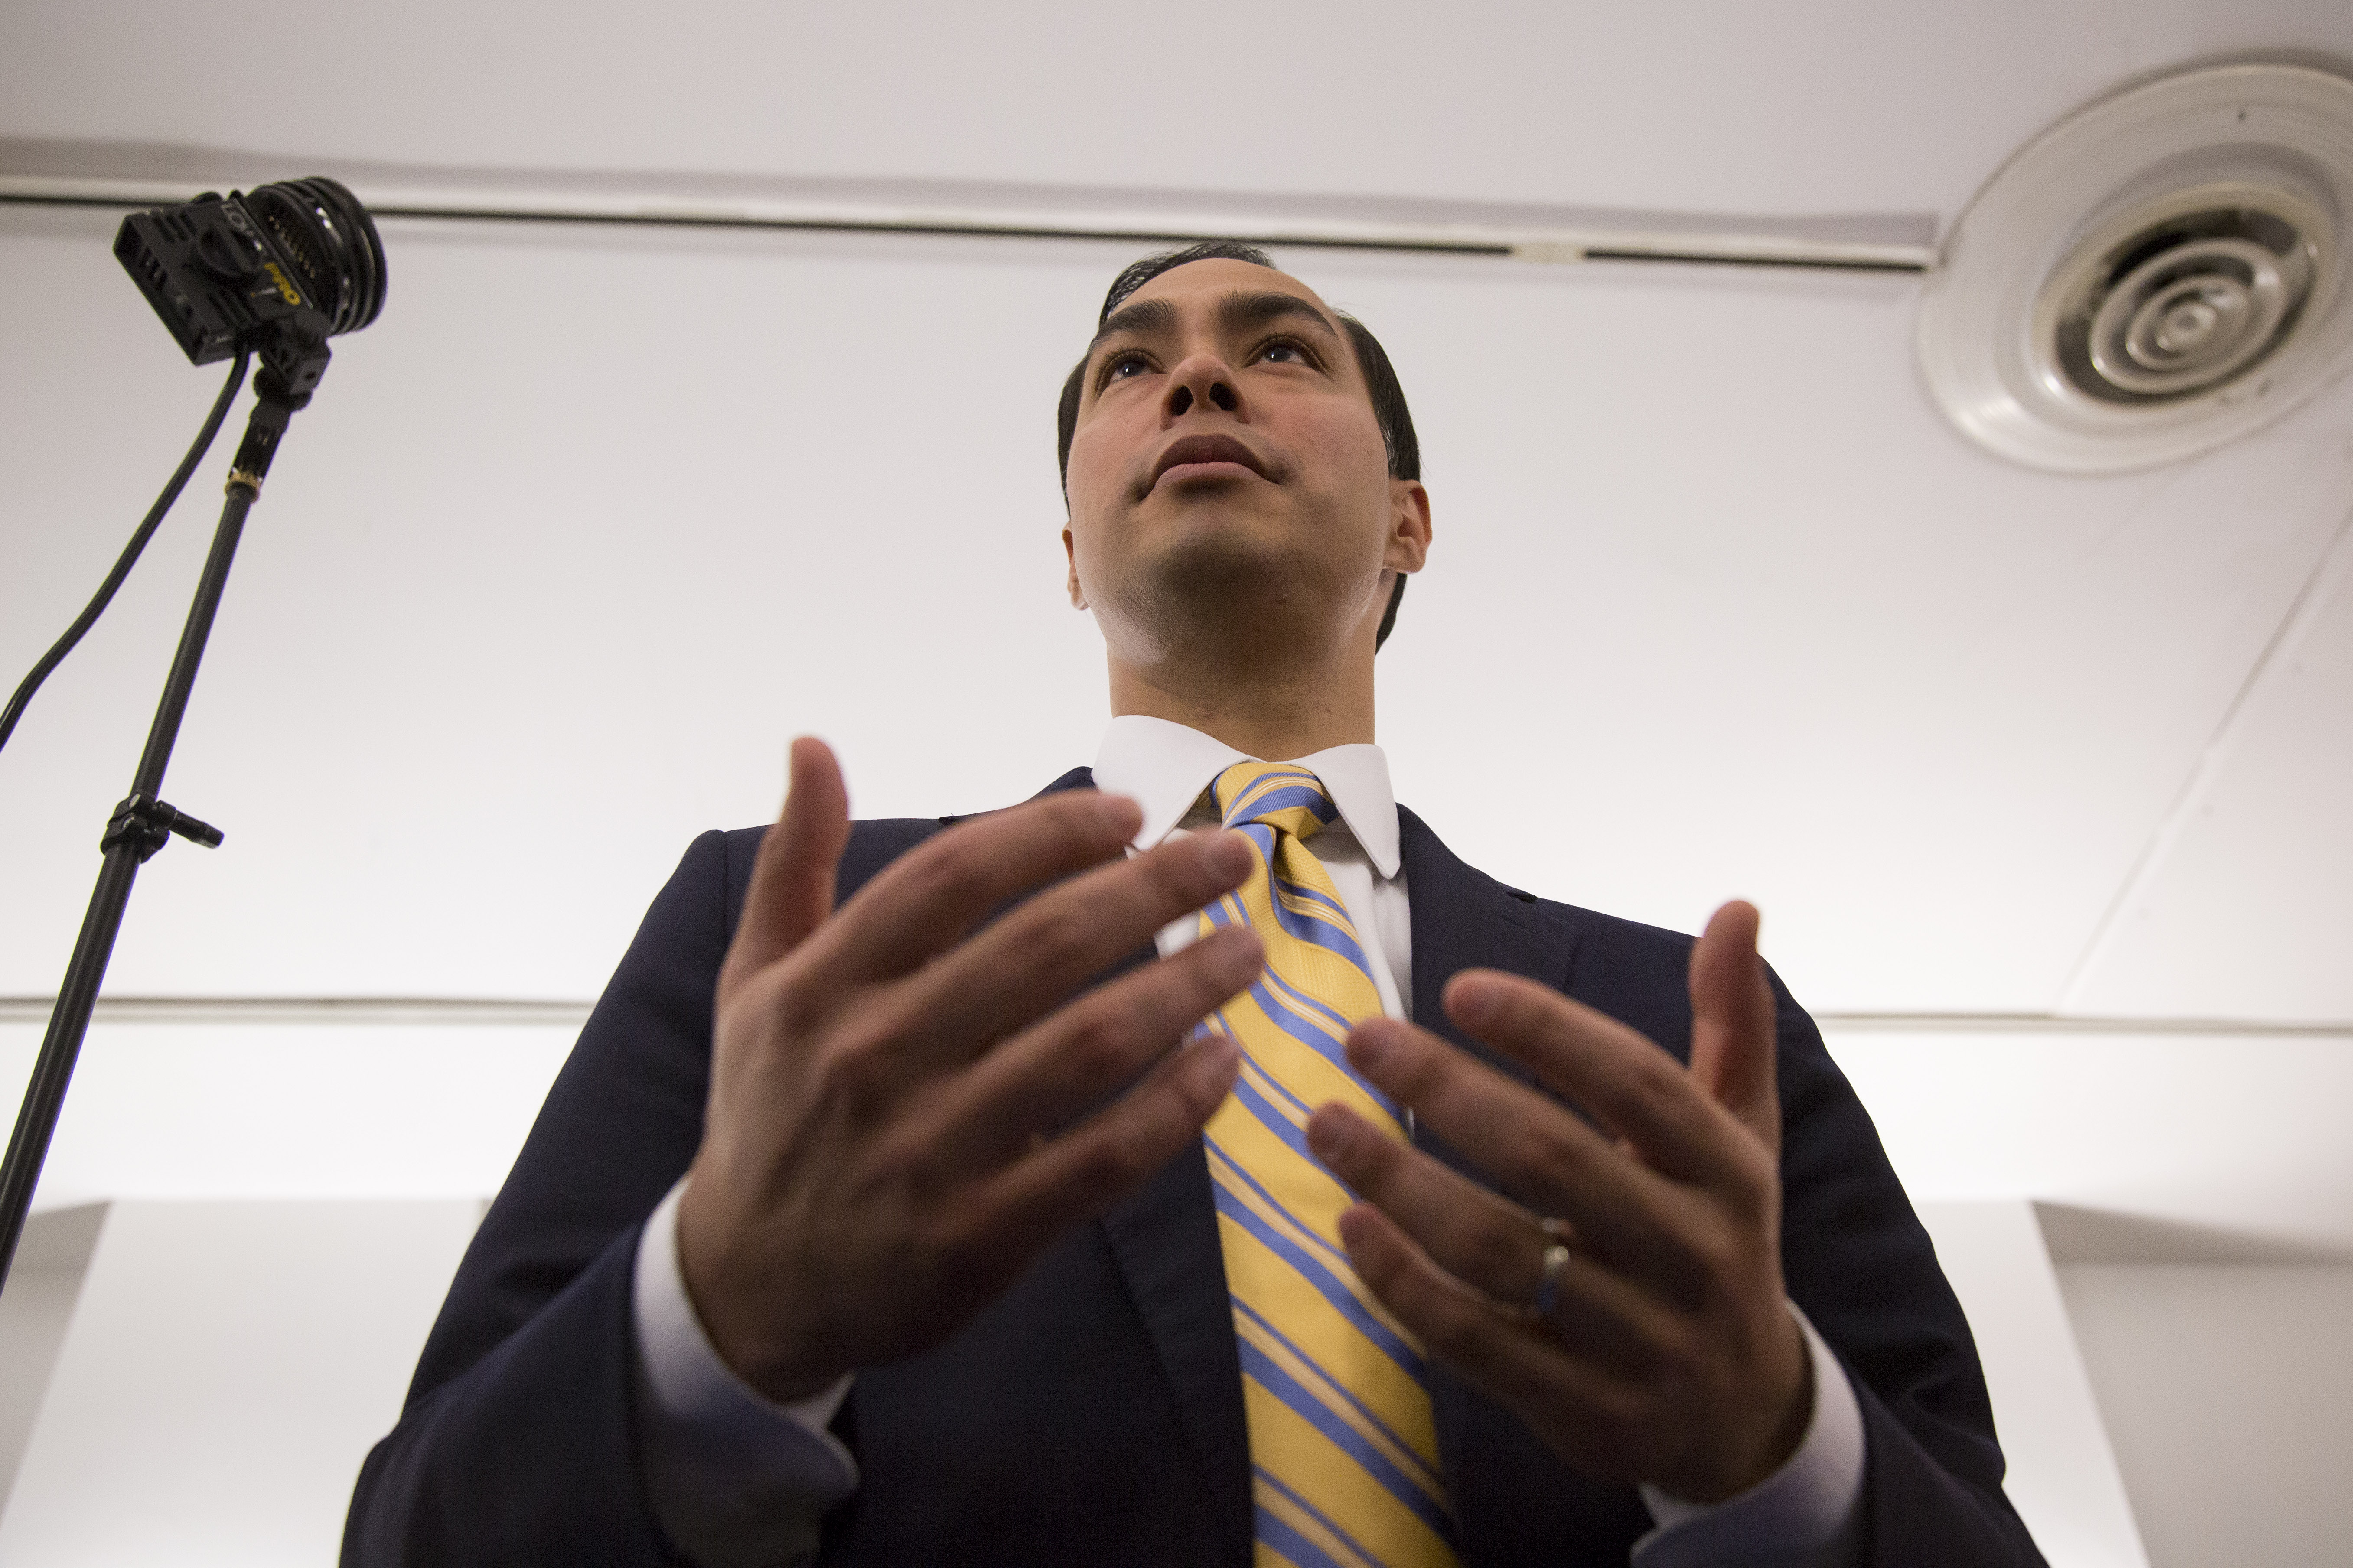 Housing Secretary Julian Castro speaks to reporters at Cooper Union in New York, U.S., on Friday, May 29, 2015.  Photographer: Michael Nagle